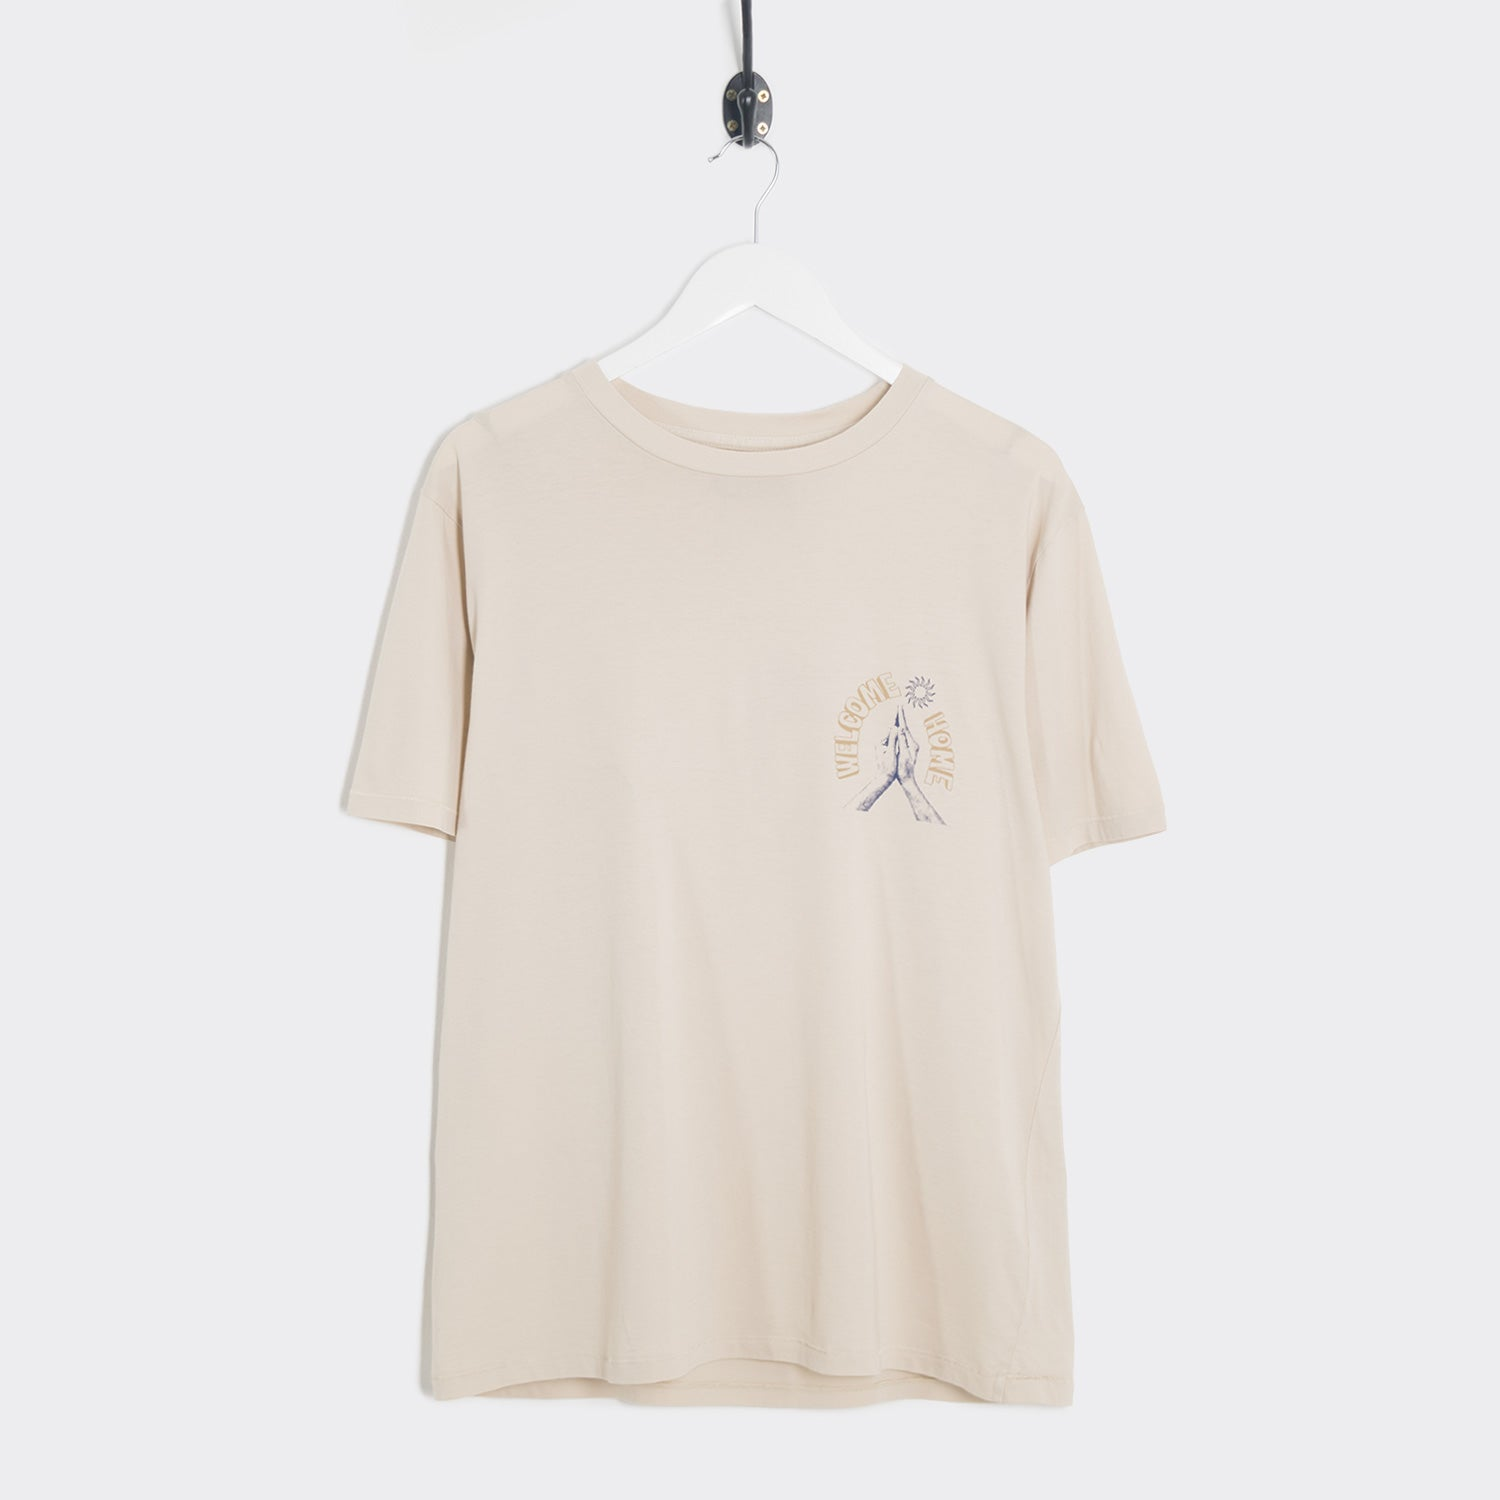 Satta Welcome Home T-Shirt - Calico